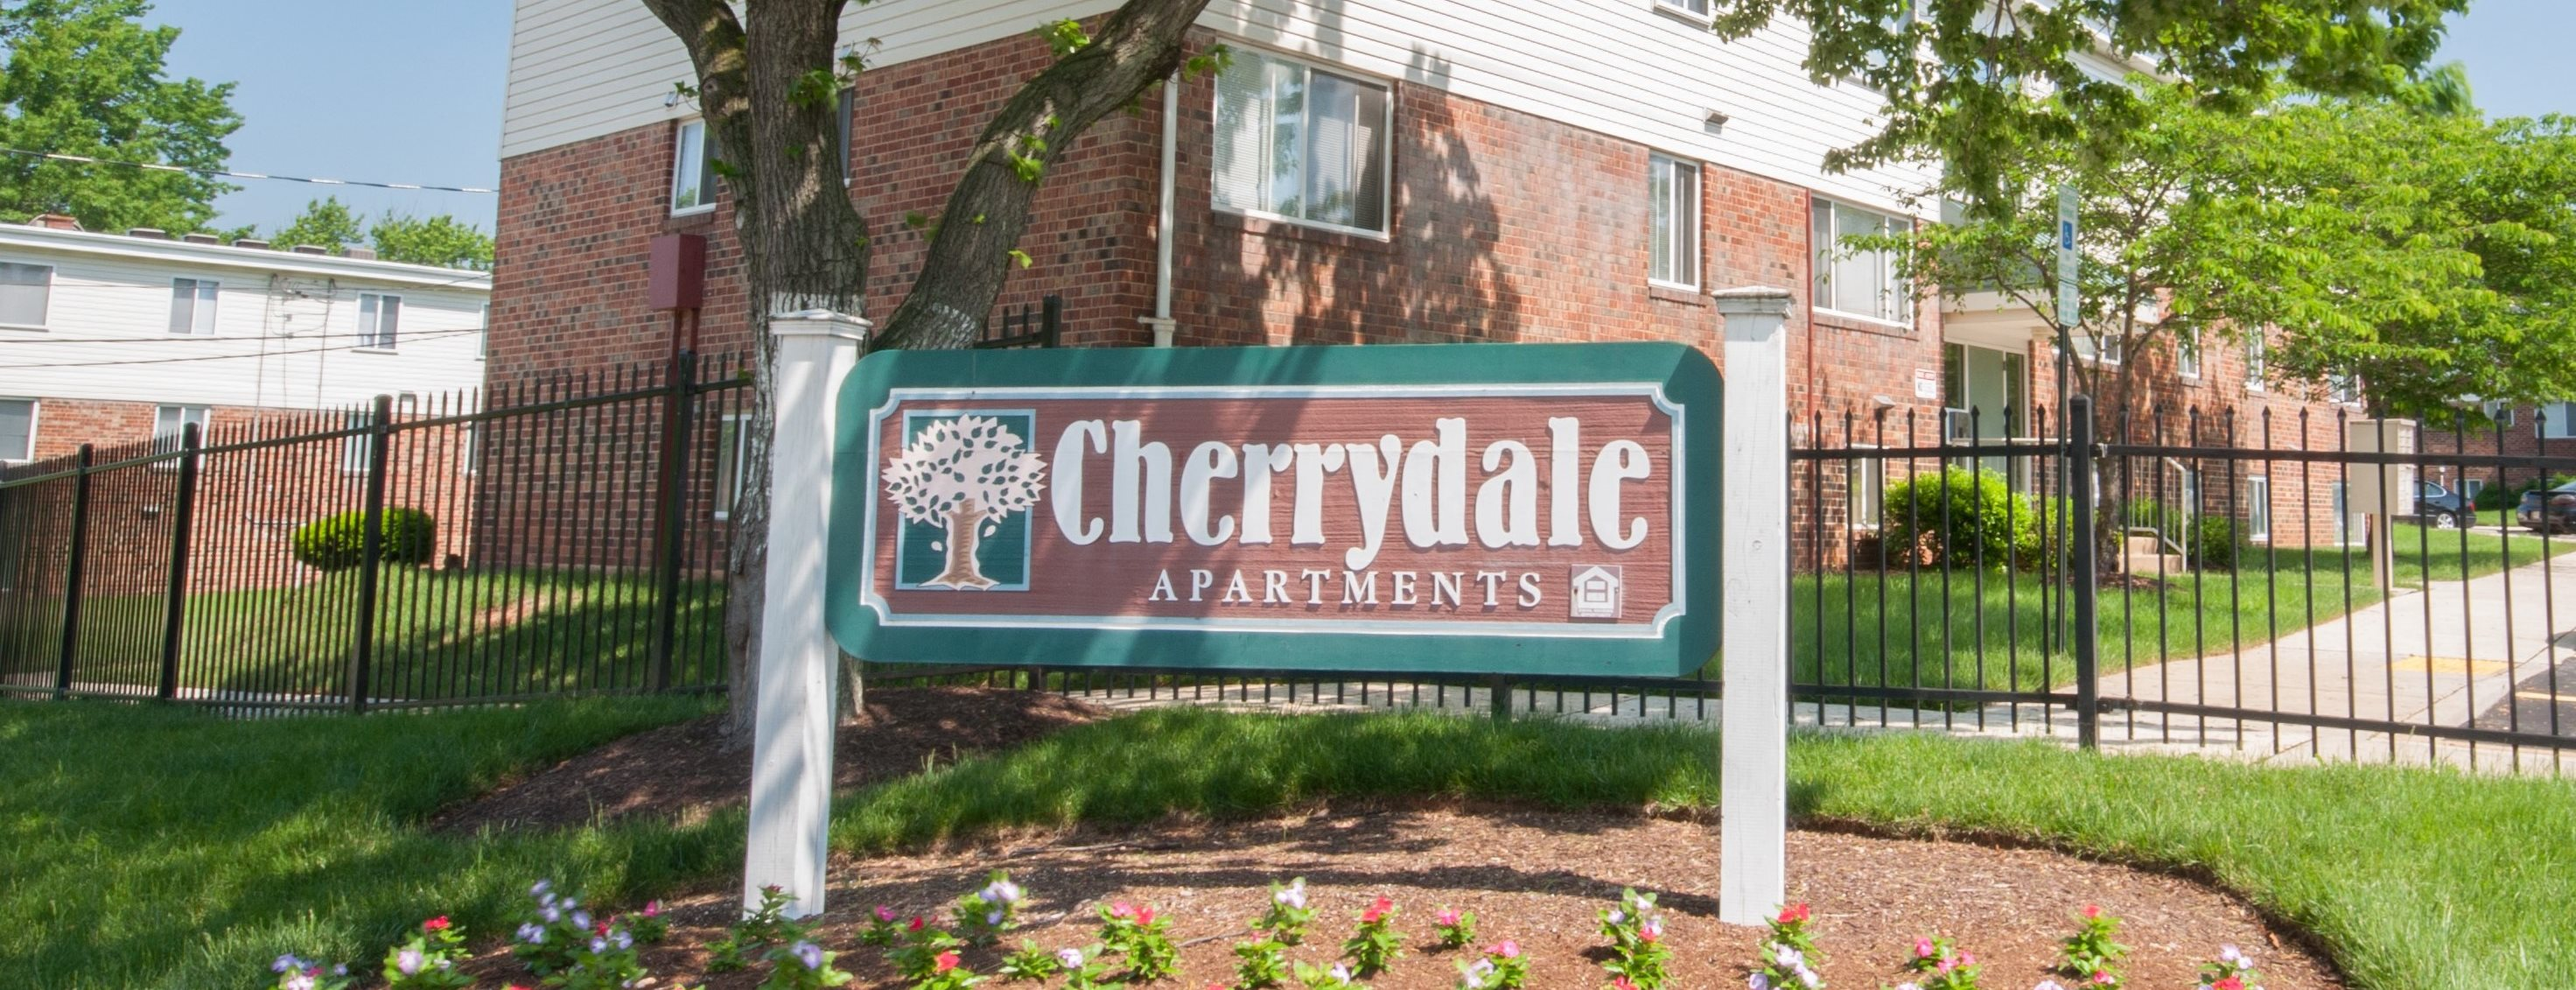 Cherrydale Apartments Apartments In Baltimore Md